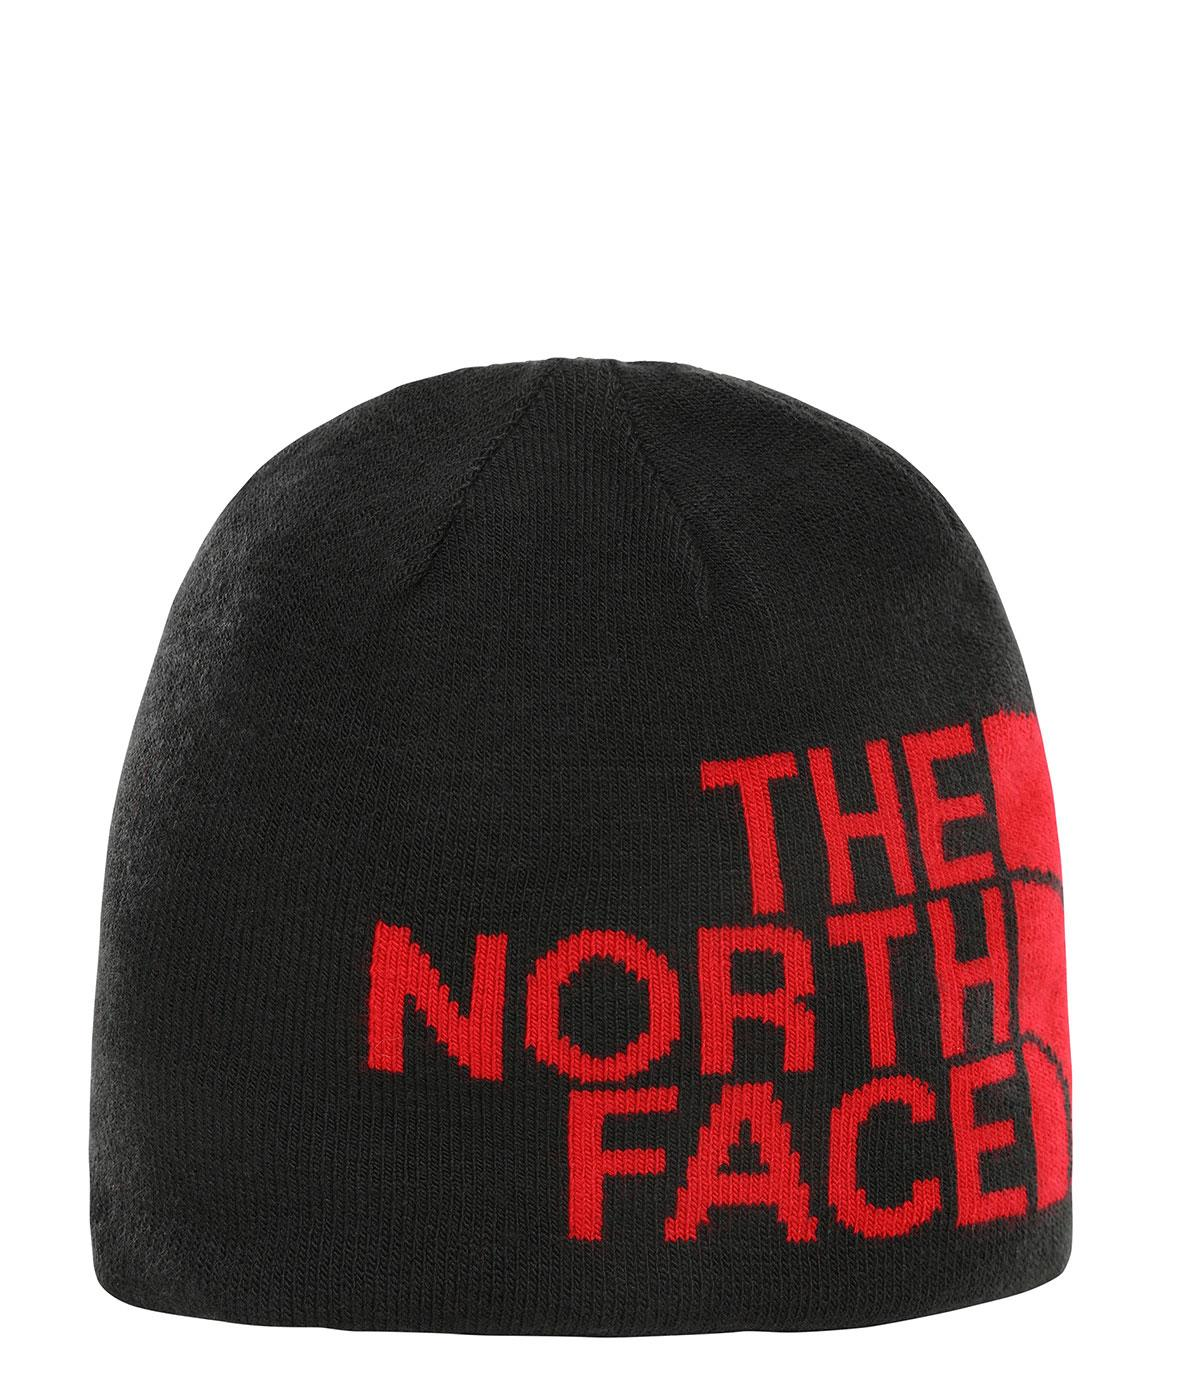 The North Face Rvsbl Tnf Banner Bere Nf00Akndhx91